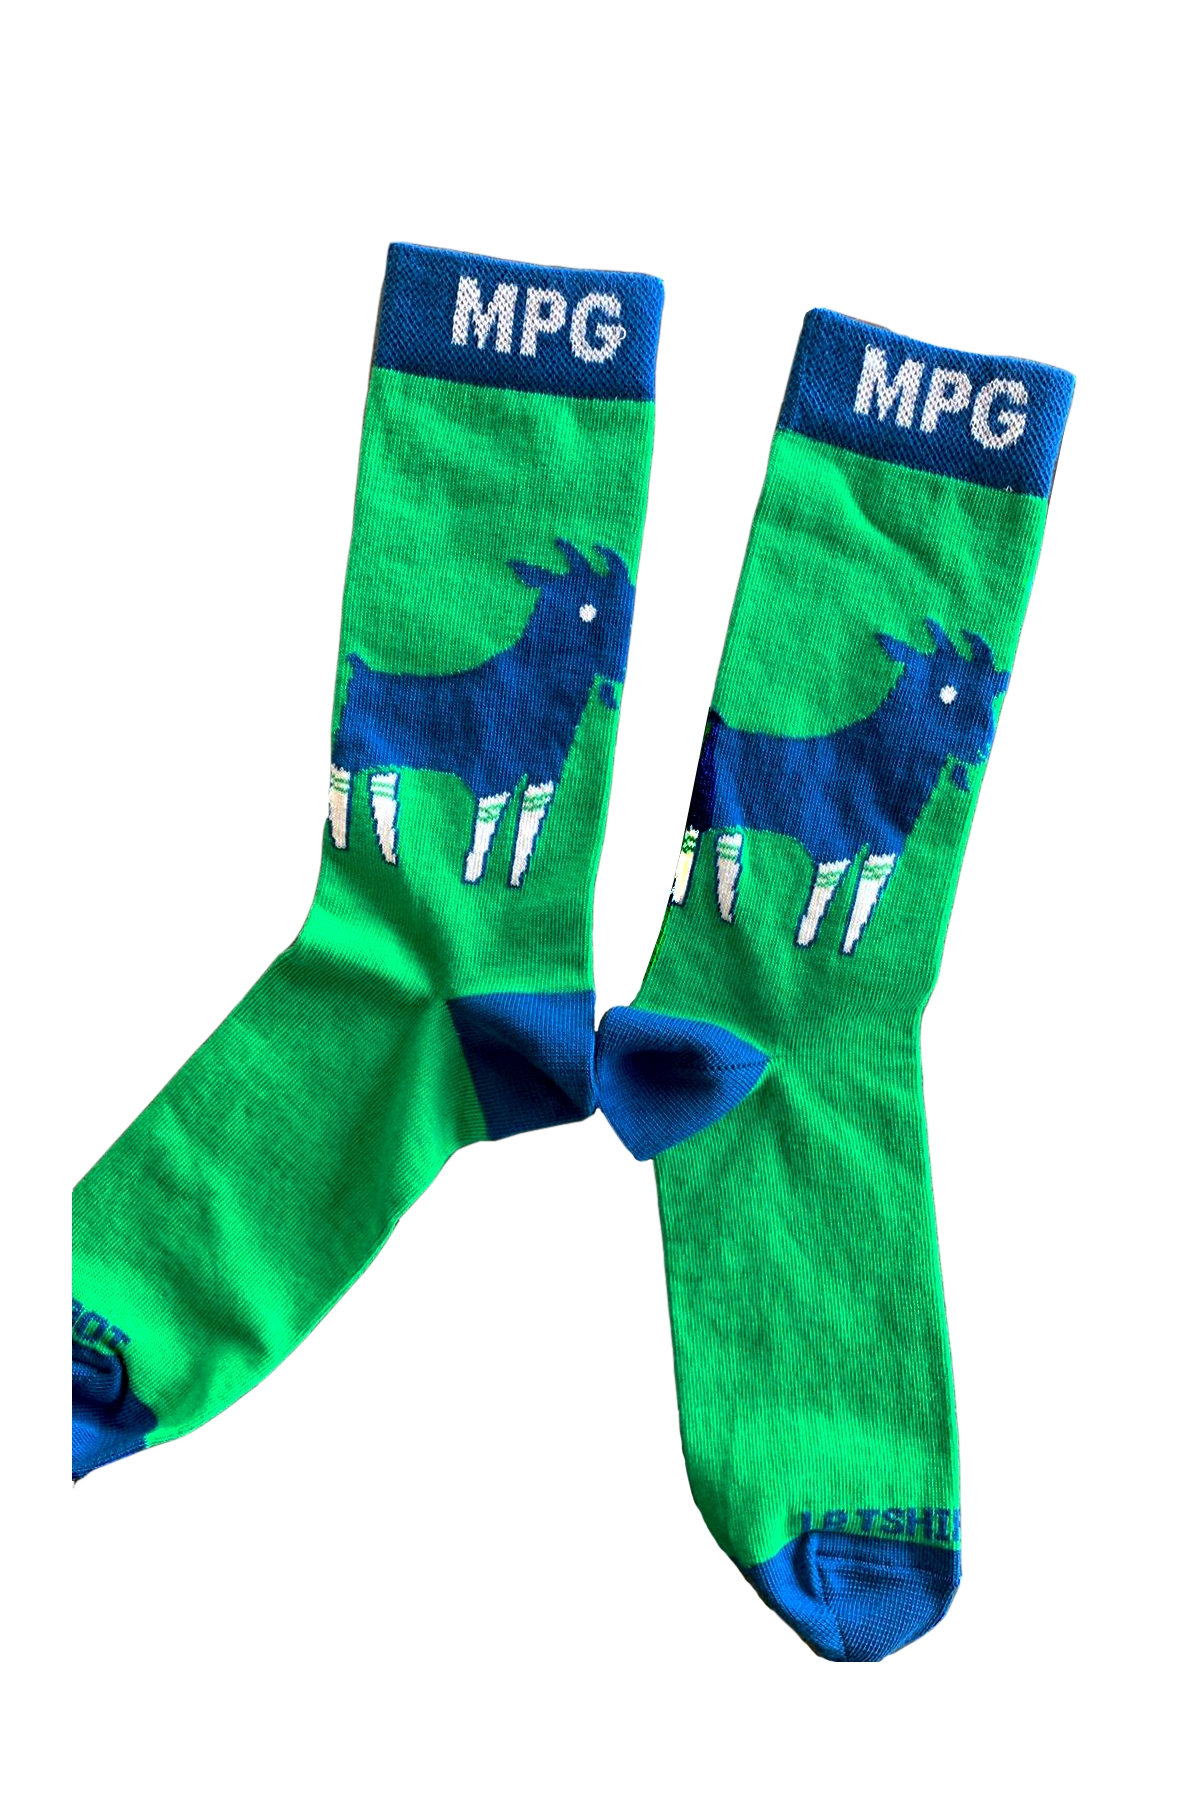 EDITION LIMITEE - Chaussettes MPG